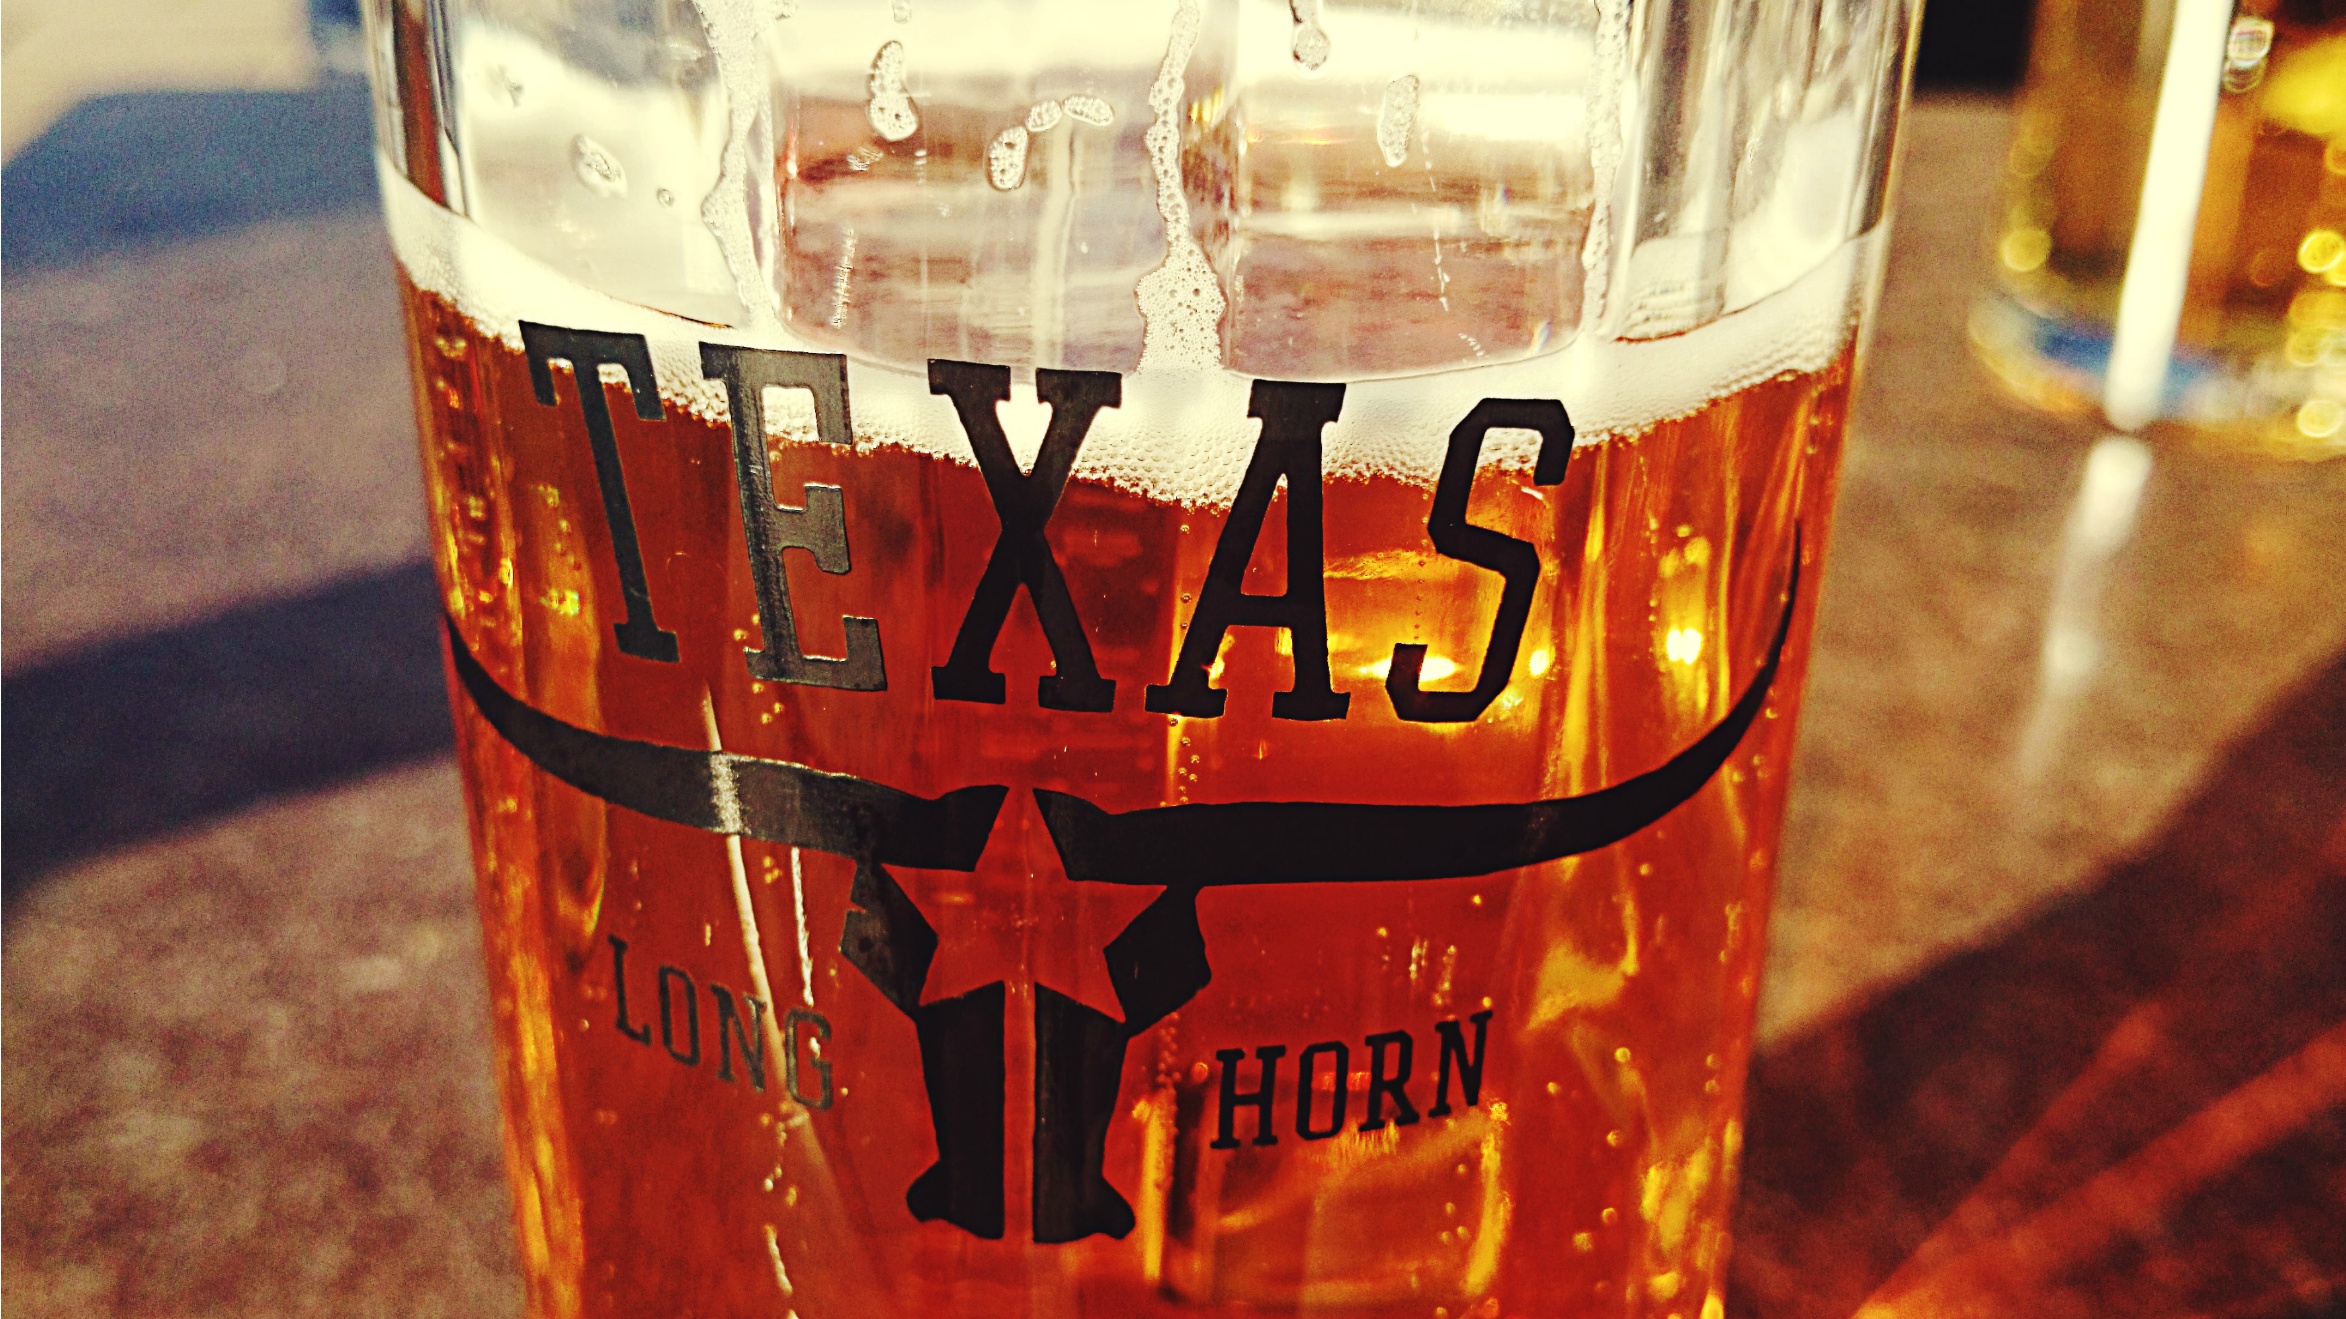 SDBG Aims To Educate While Big Beer Wins In Texas